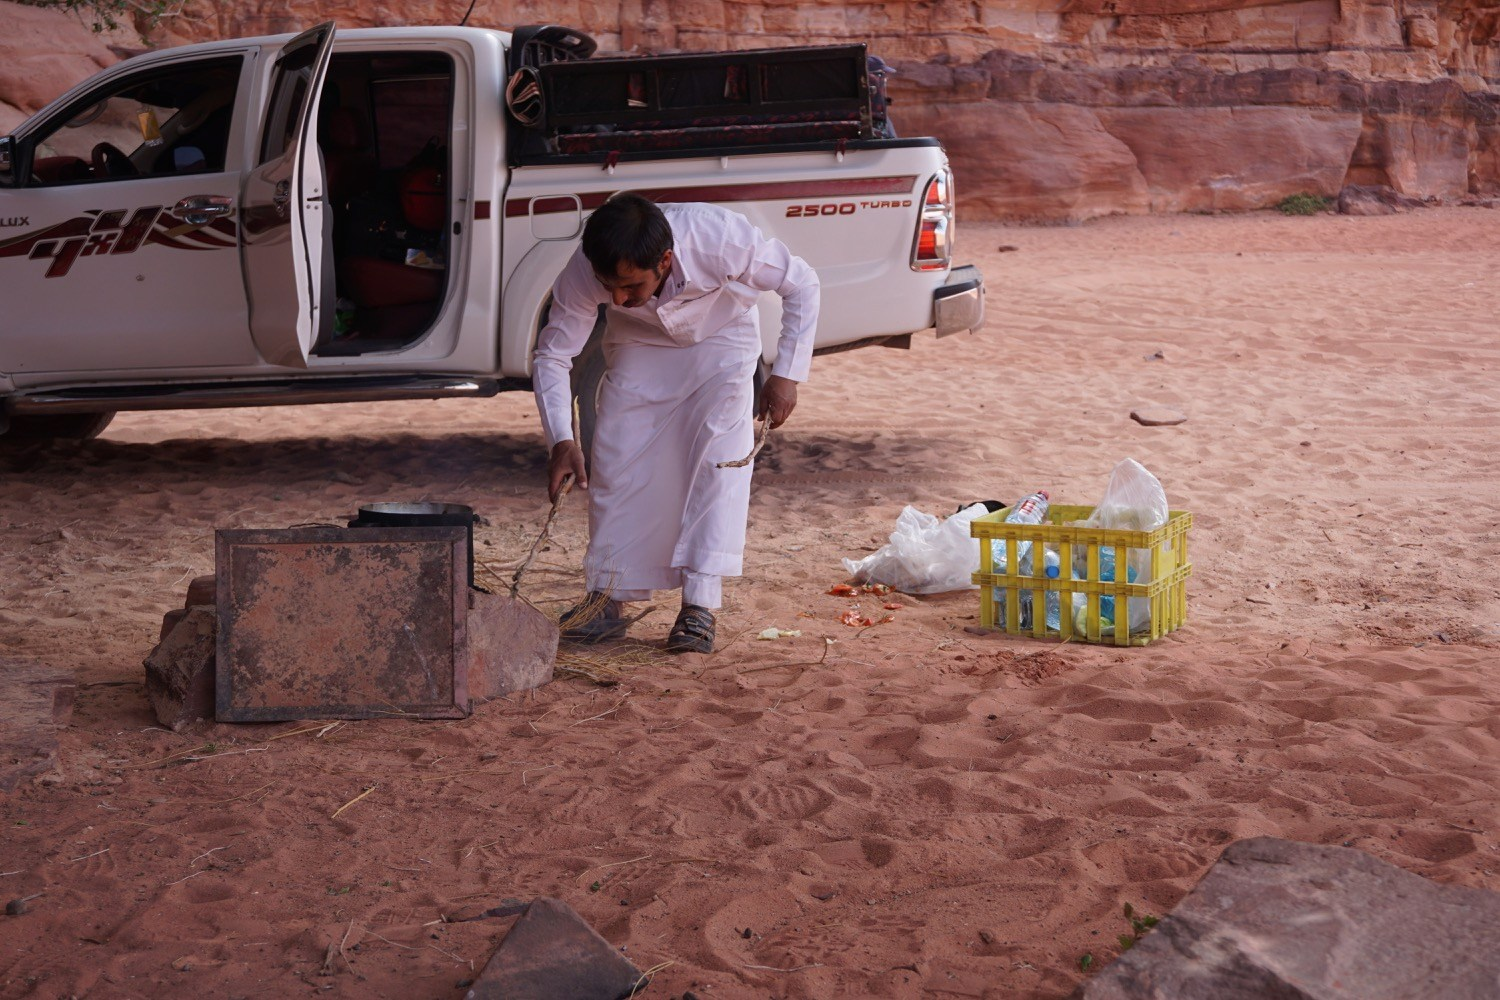 Cooking lunch in Wadi Rum